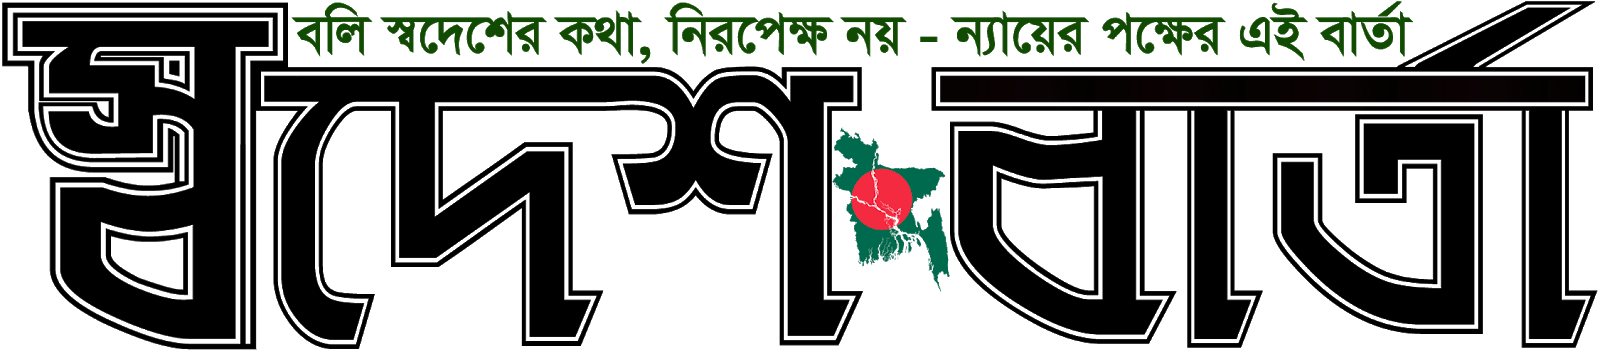 Shodesh Barta | The Most Popular Bangla Online News Portal in Bangladesh